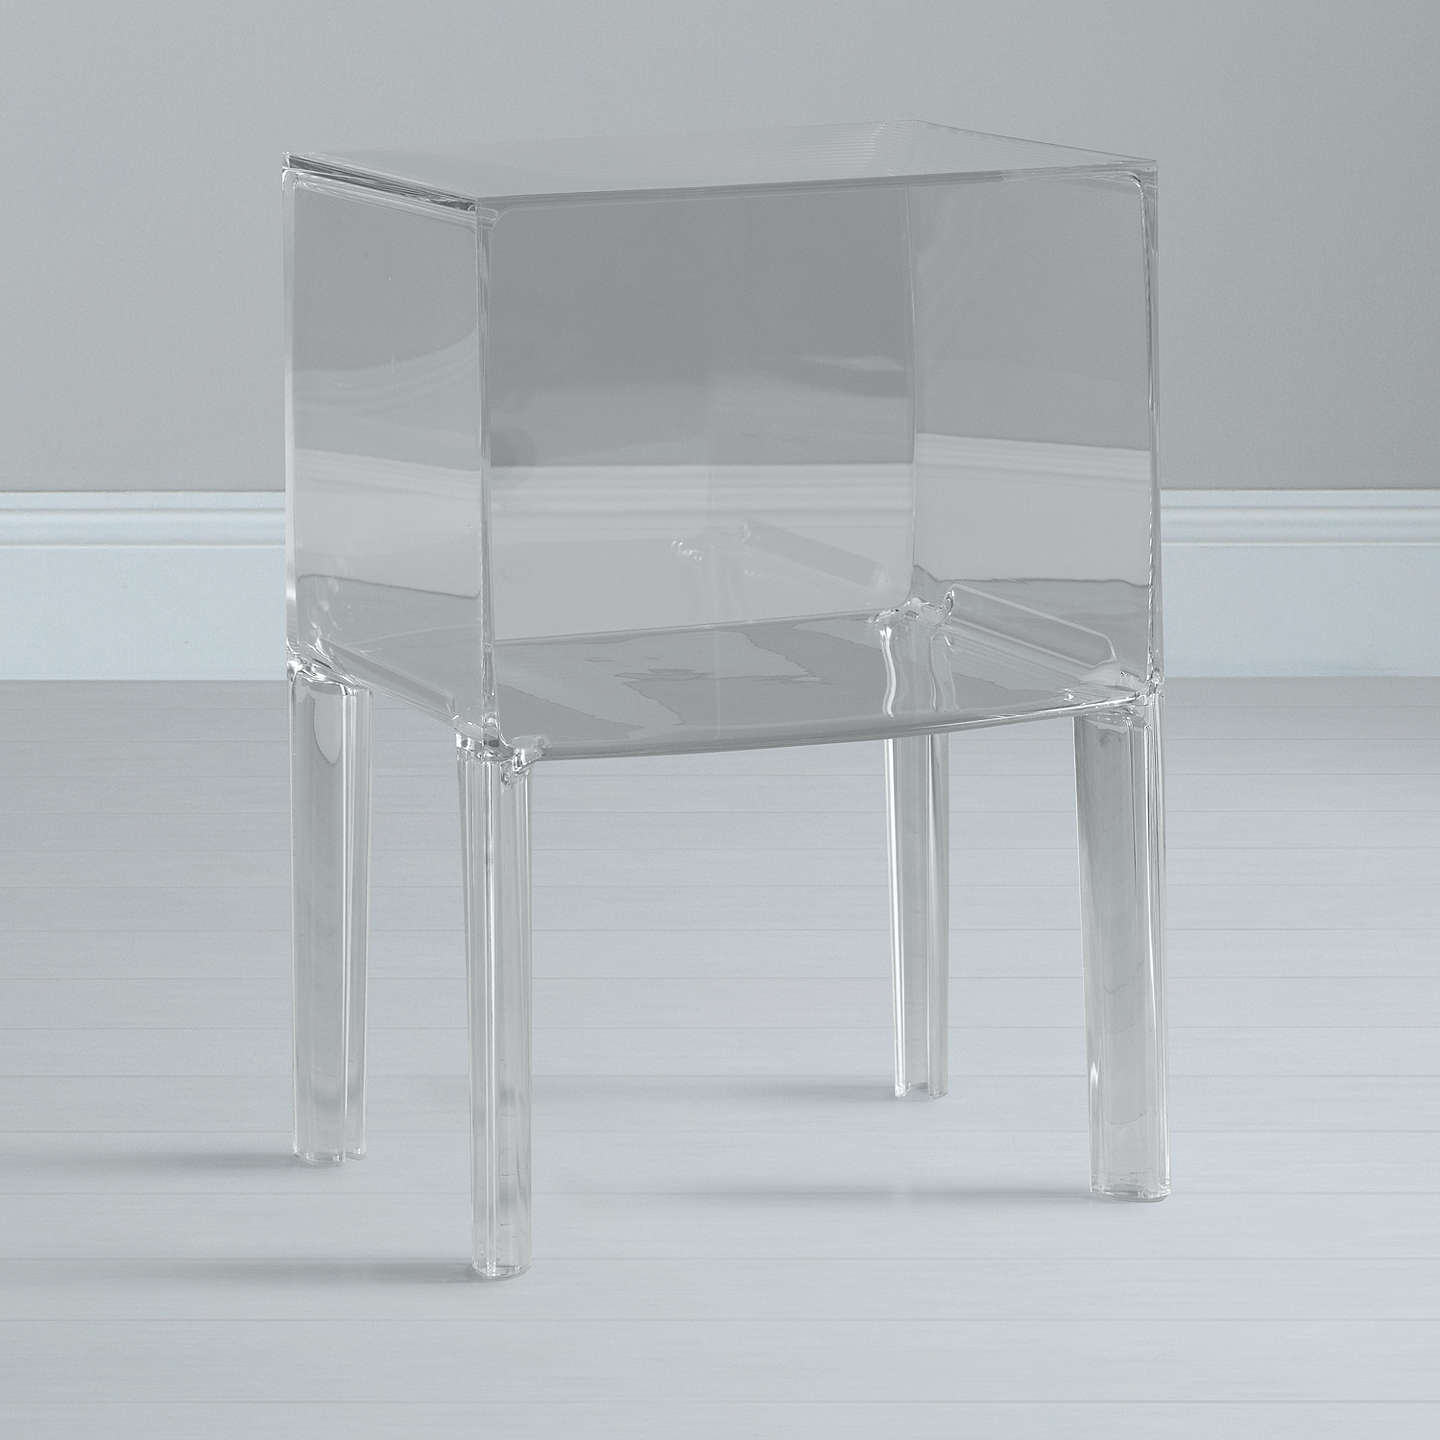 BuyPhilippe Starck for Kartell Ghost Buster Night Table, Crystal, Small Online at johnlewis.com